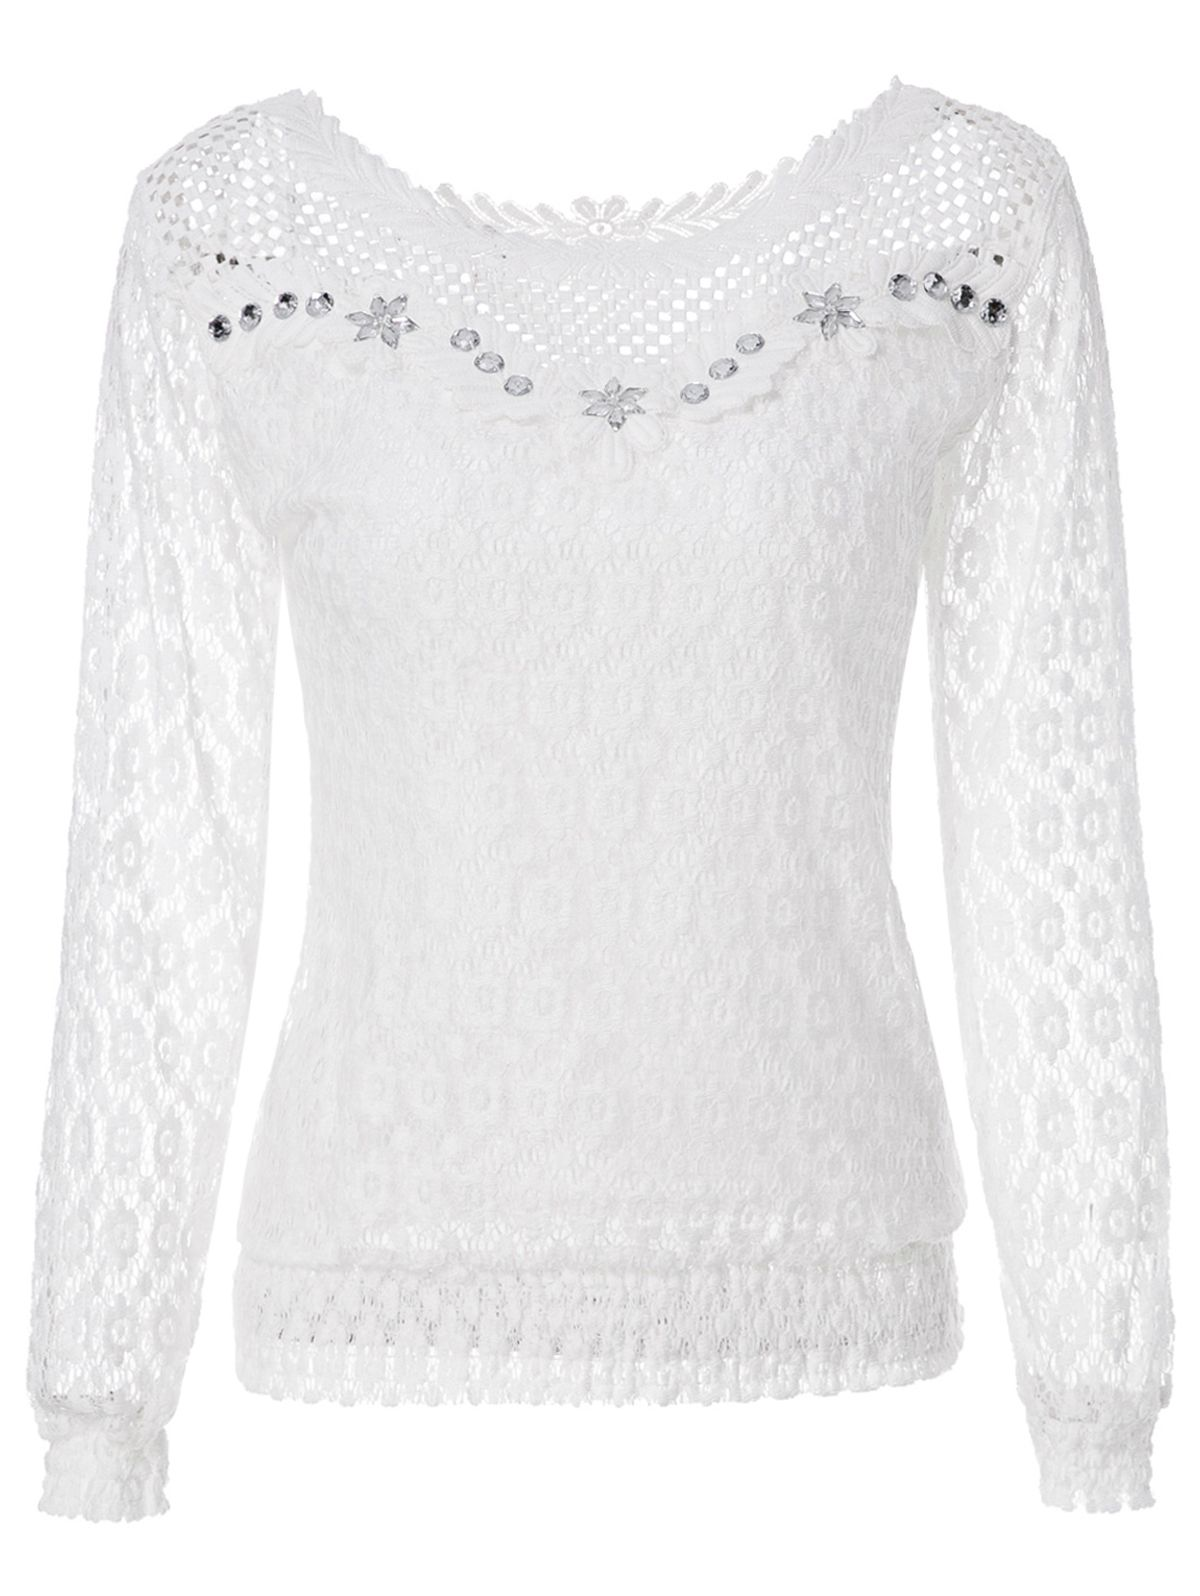 a33c7ba1a0c1d Stylish Scoop Neck Long Sleeve Openwork Blouse For Women - White - L ...